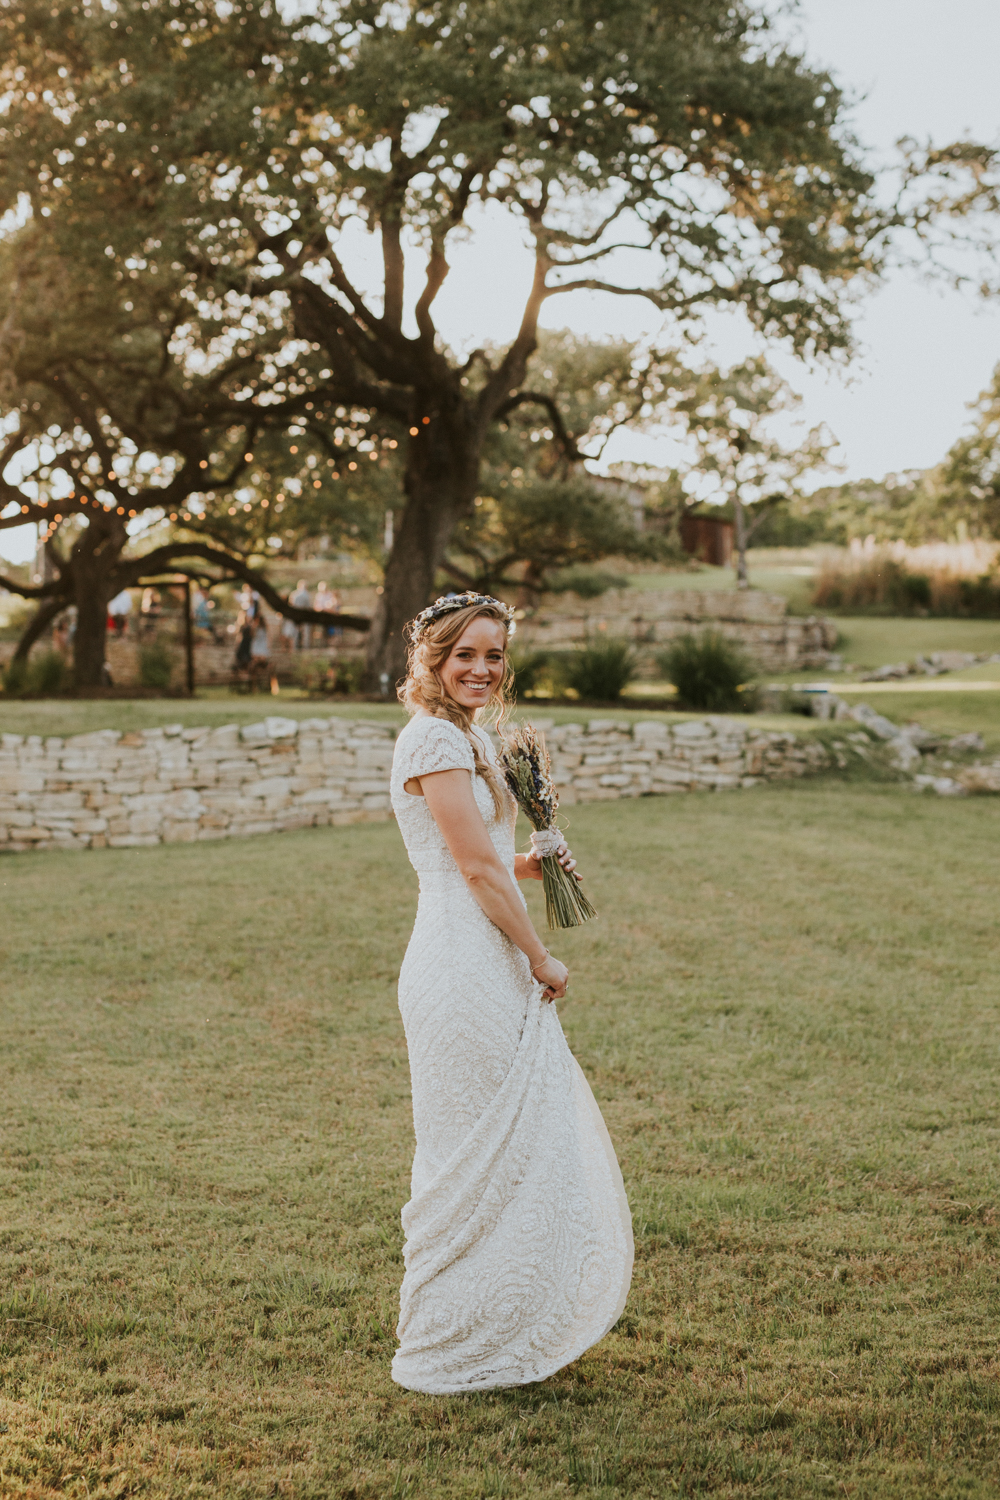 Rustic Ranch Wedding Photography - Diana Ascarrunz Photography - Austin Wedding Photographer-54.jpg